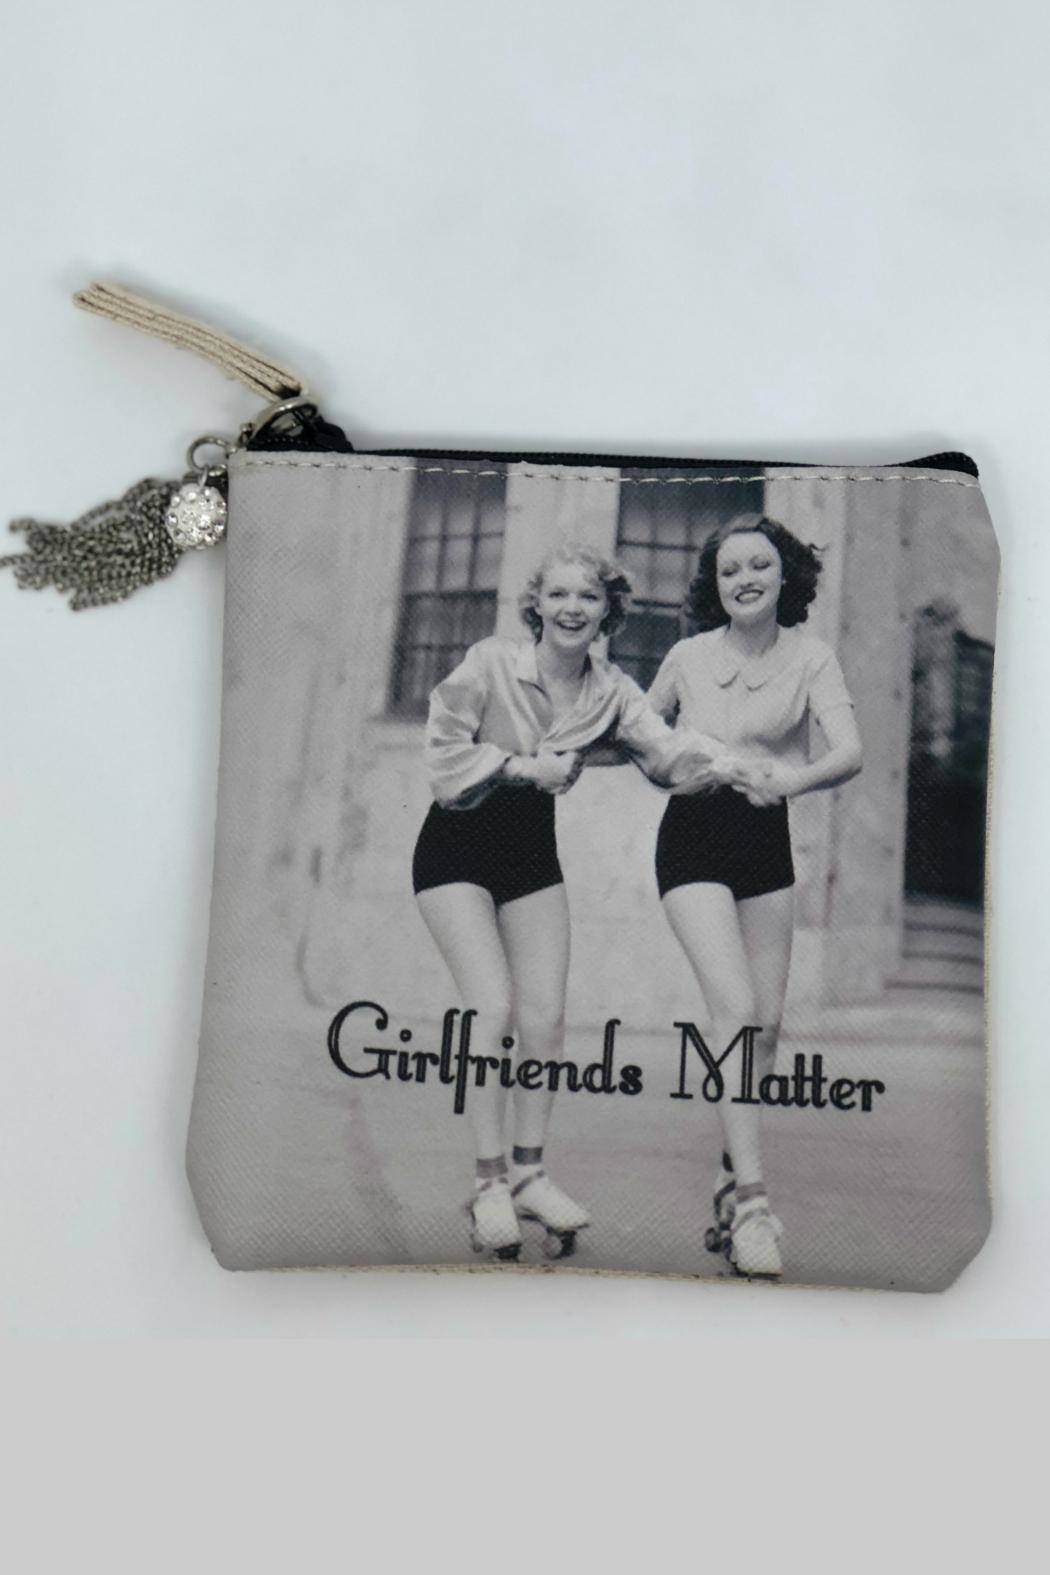 My Favorite Things Vintage Pouch (Girlfriends) - Main Image